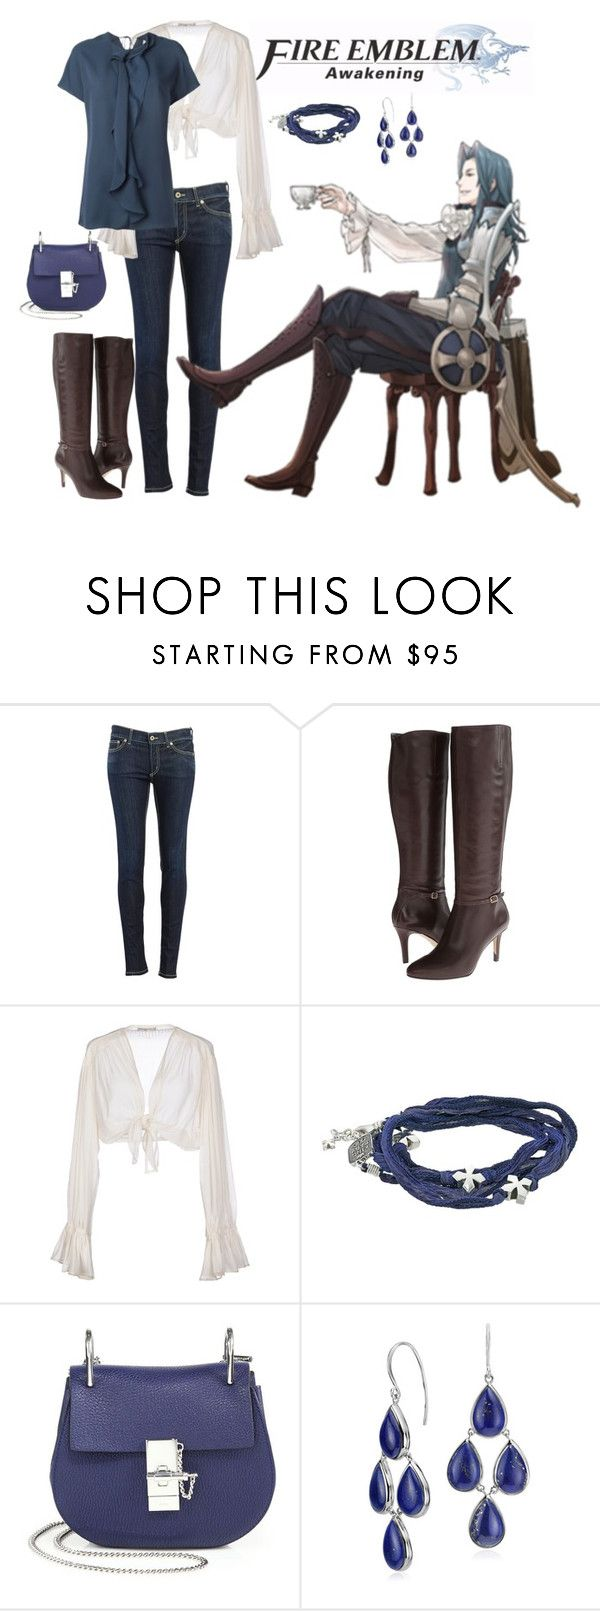 """Virion: Fire Emblem Awakening"" by marielw97 ❤ liked on Polyvore featuring Dondup, Cole Haan, Mes Demoiselles..., King Baby Studio, Chloé, Blue Nile and 3.1 Phillip Lim"